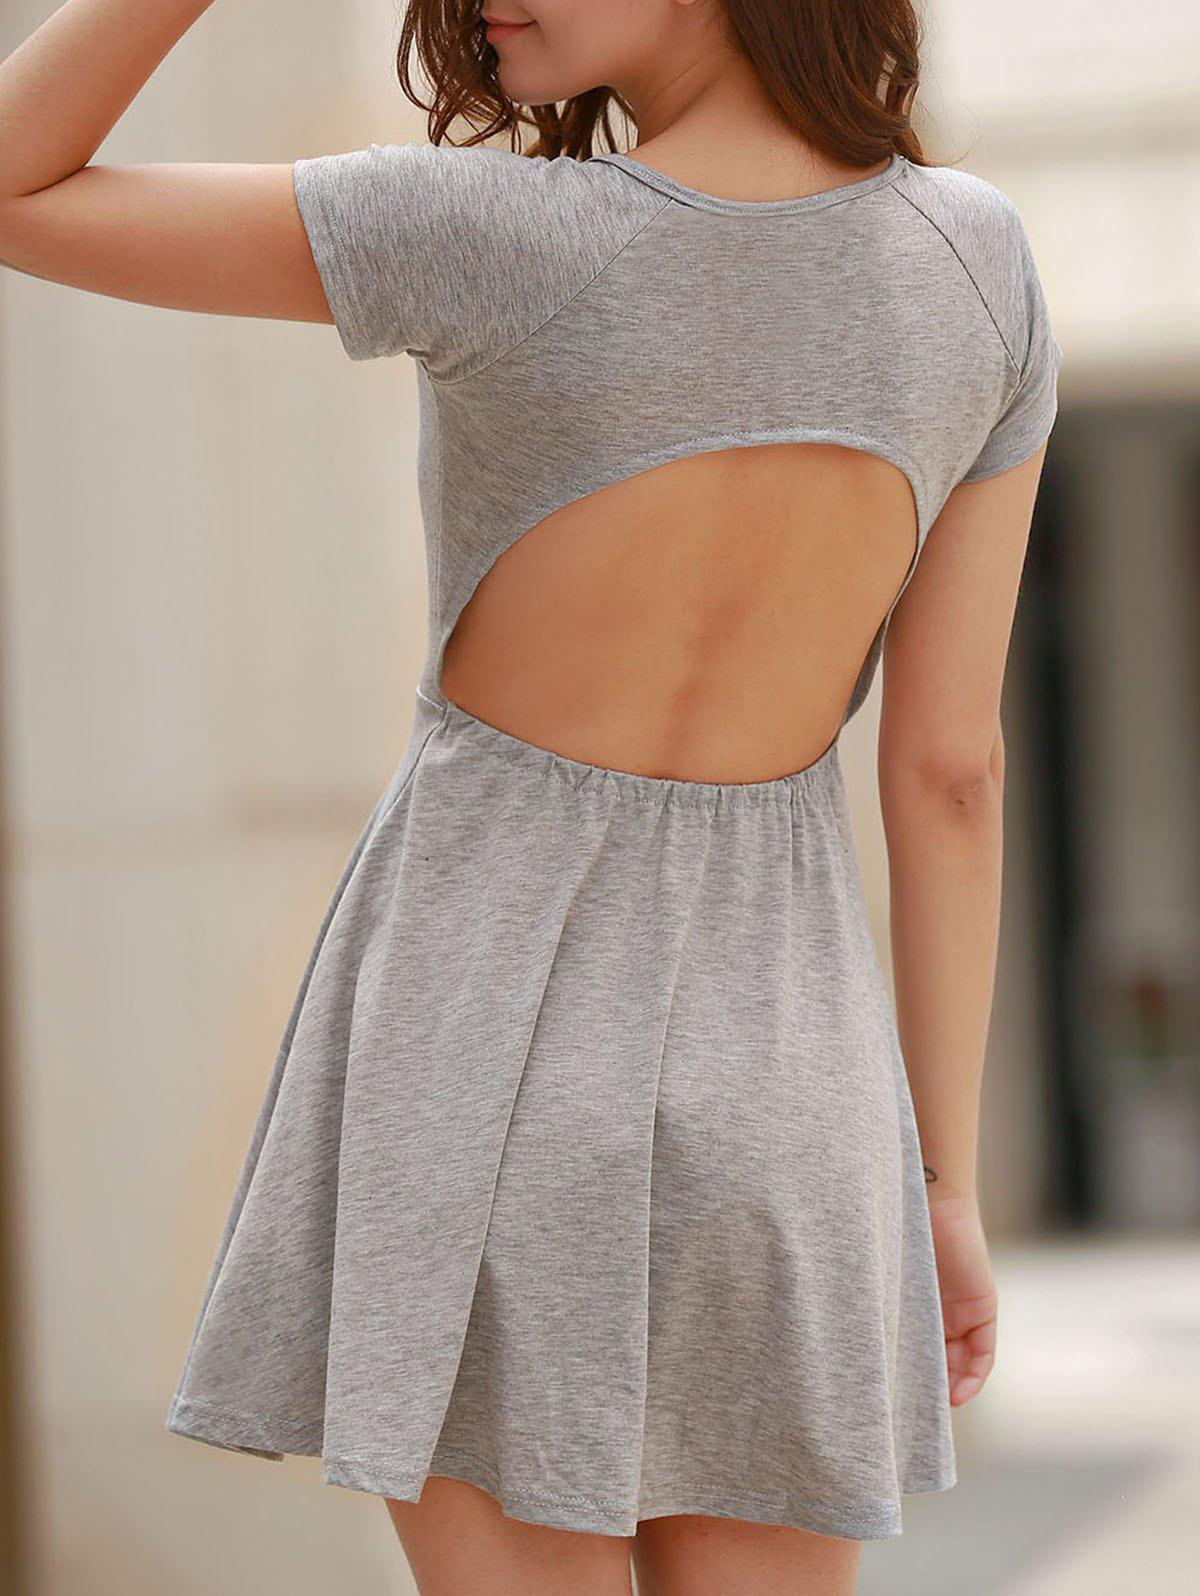 Sweet Gray Scoop Neck High Waist Backless Dress For Women - GRAY L